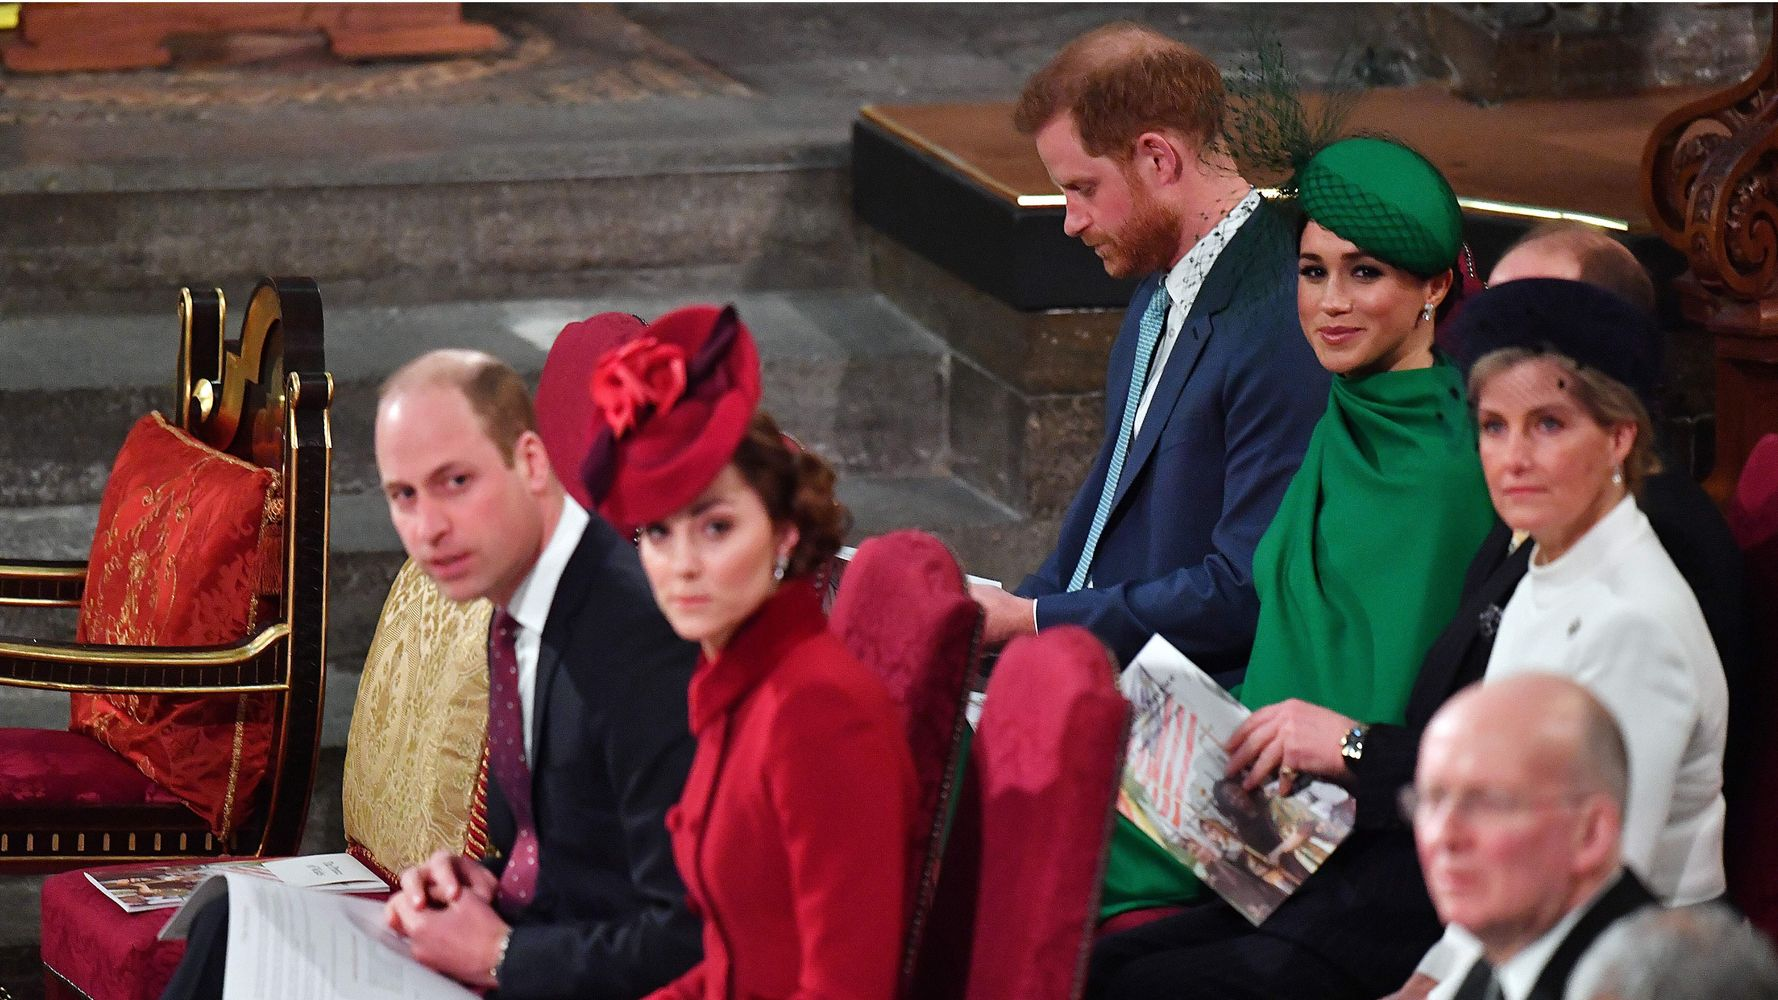 Royal Fans Can't Stop Analyzing This Video Of Harry, Meghan, William And Kate